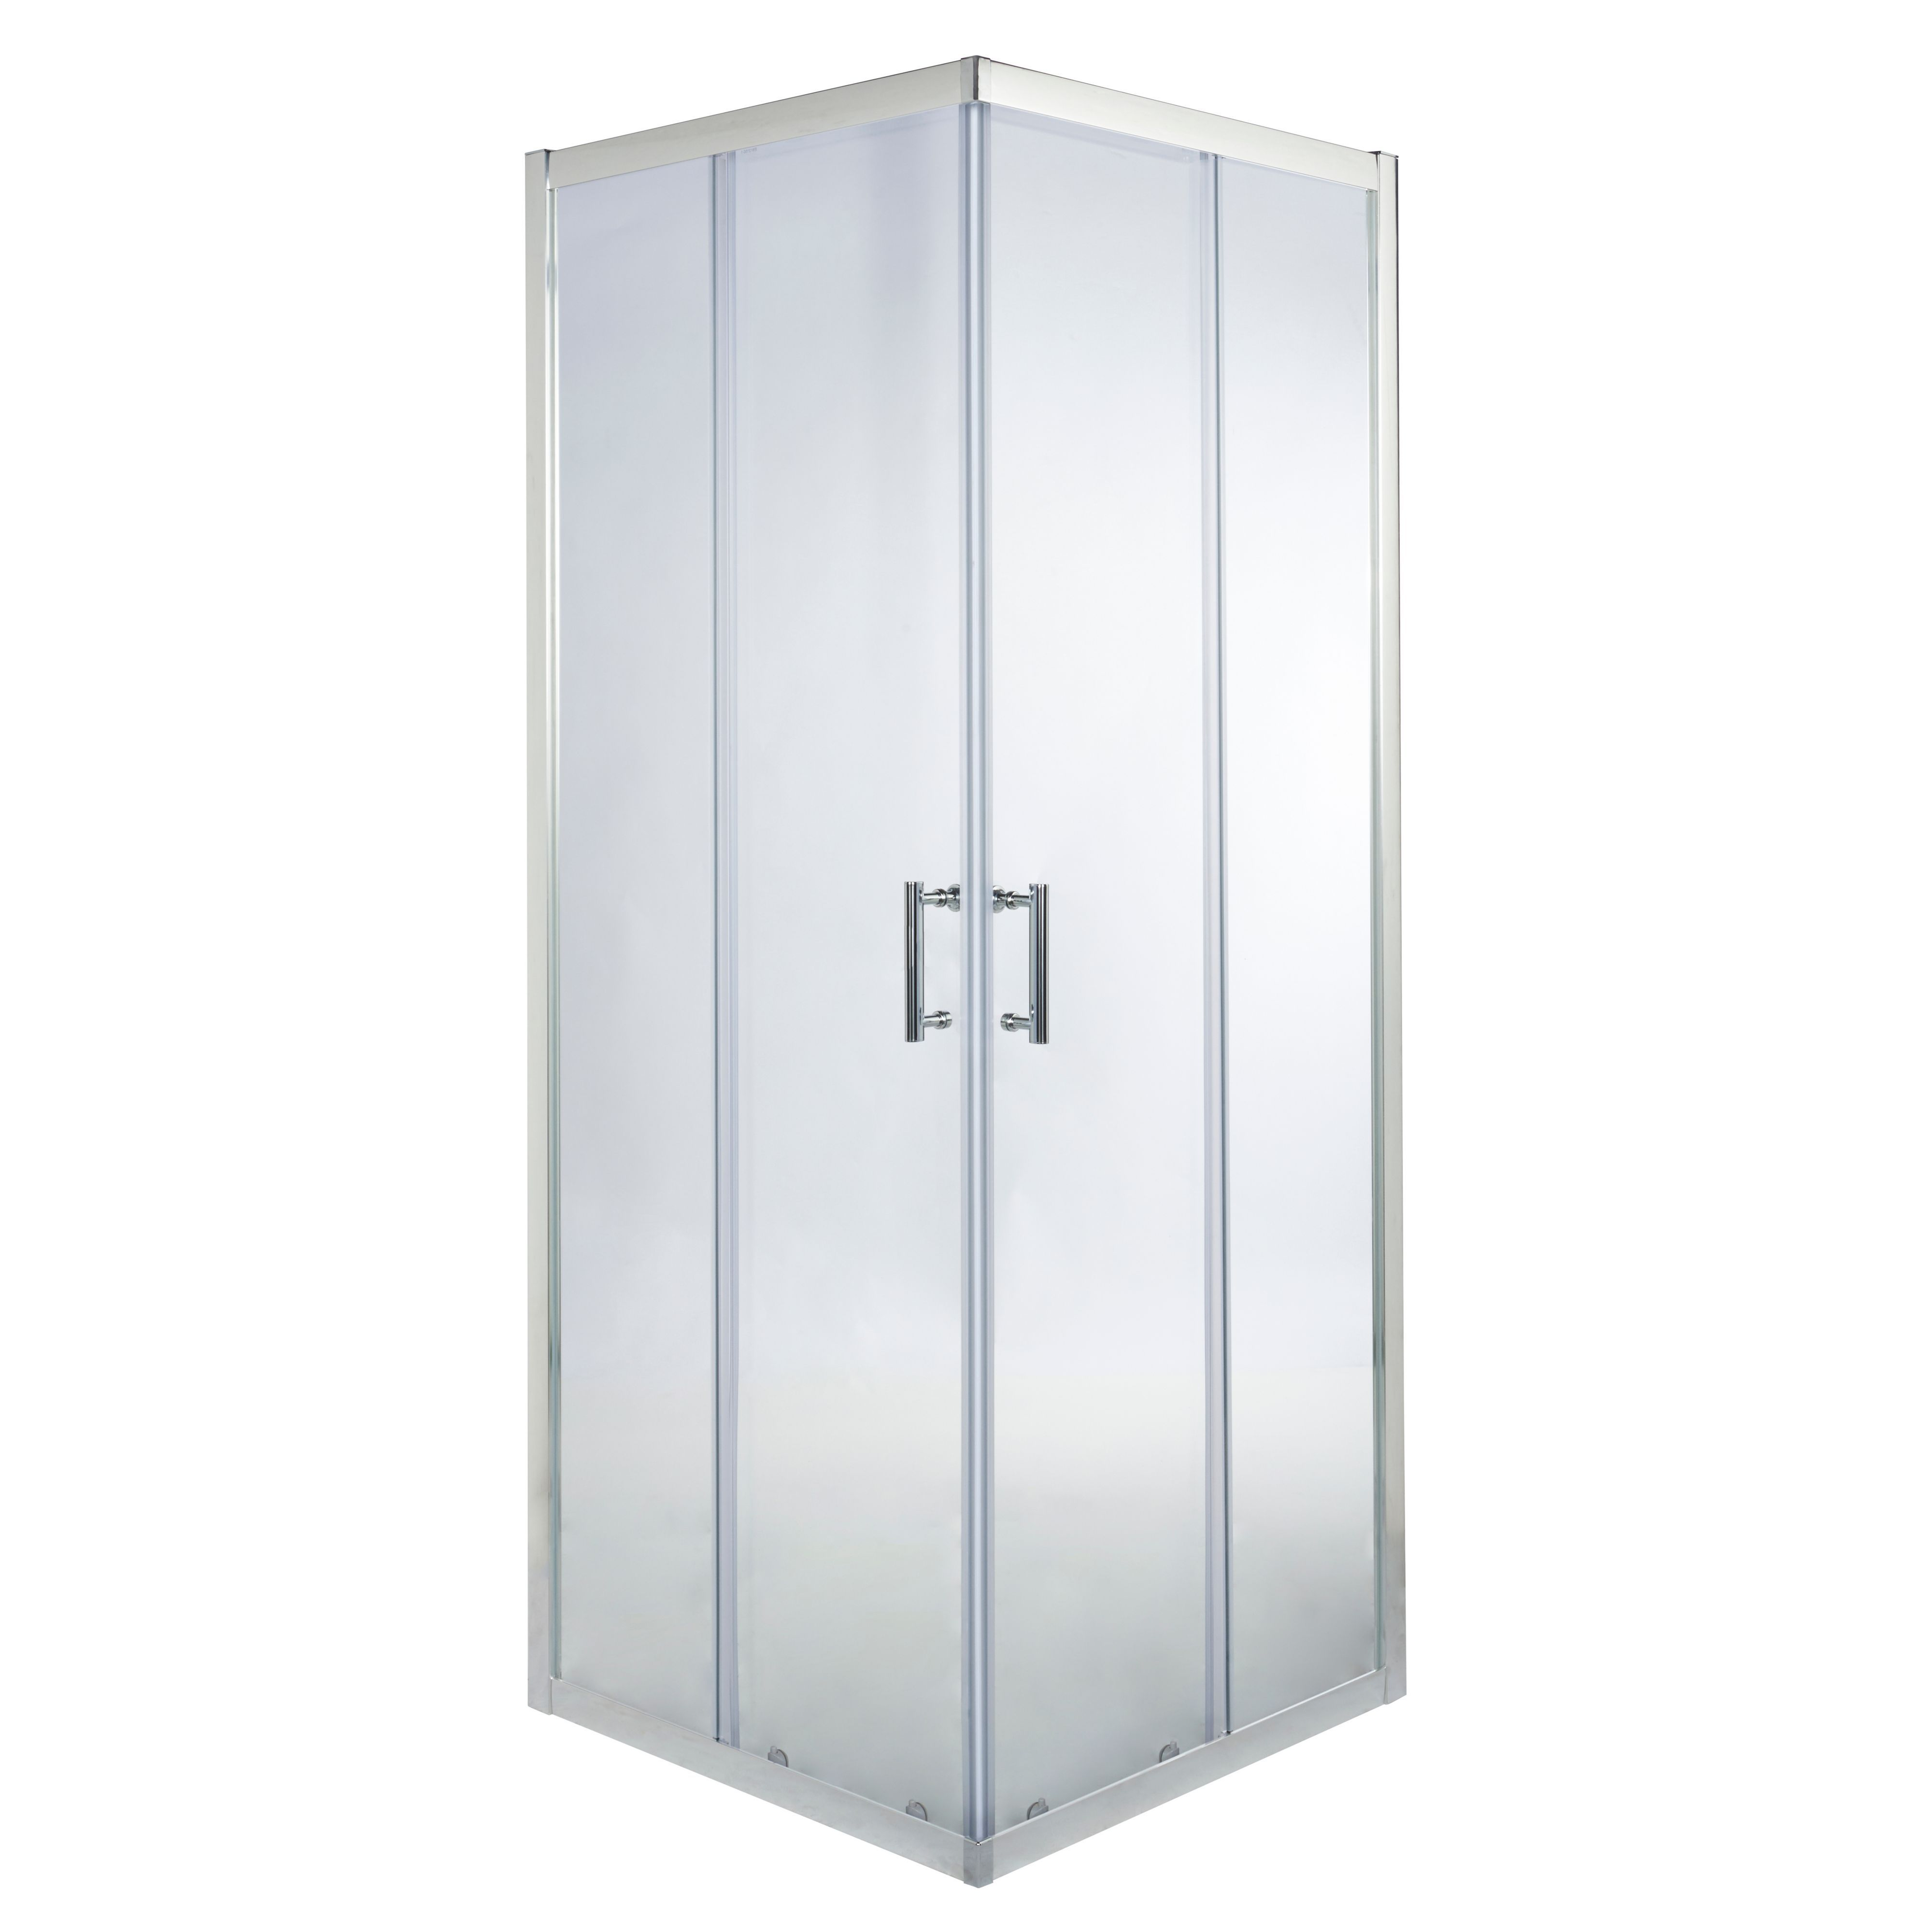 Cooke & Lewis Onega Square Shower Enclosure With Corner Entry Double Sliding Door (w)760mm (d)760mm